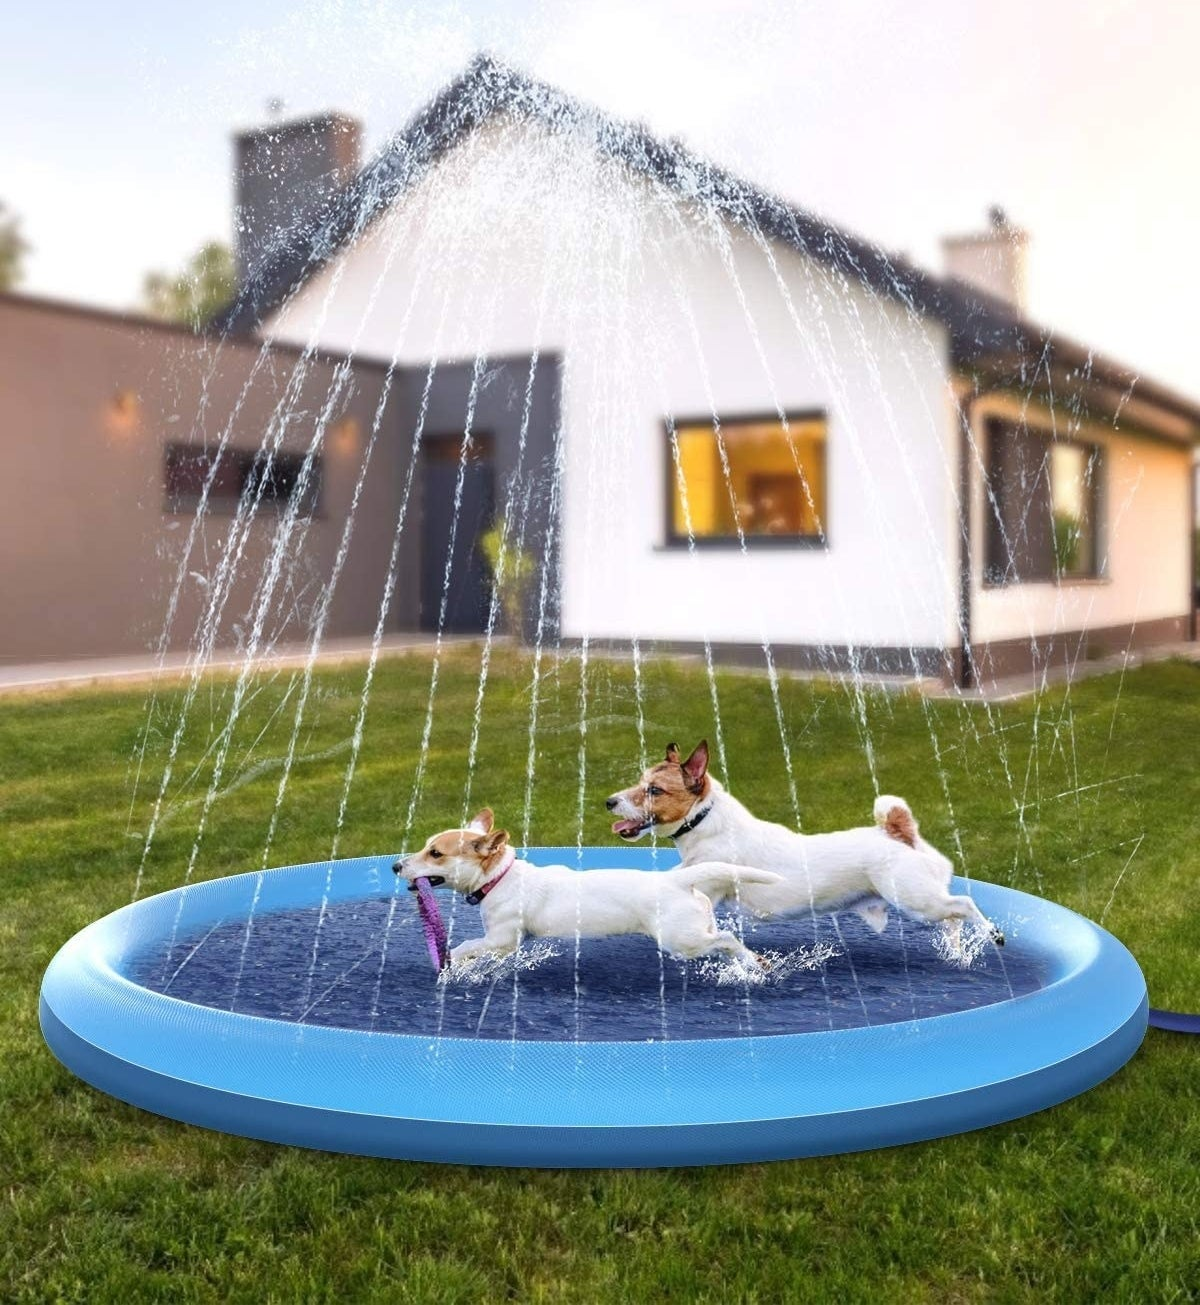 two dogs in blue pool with sprinkler